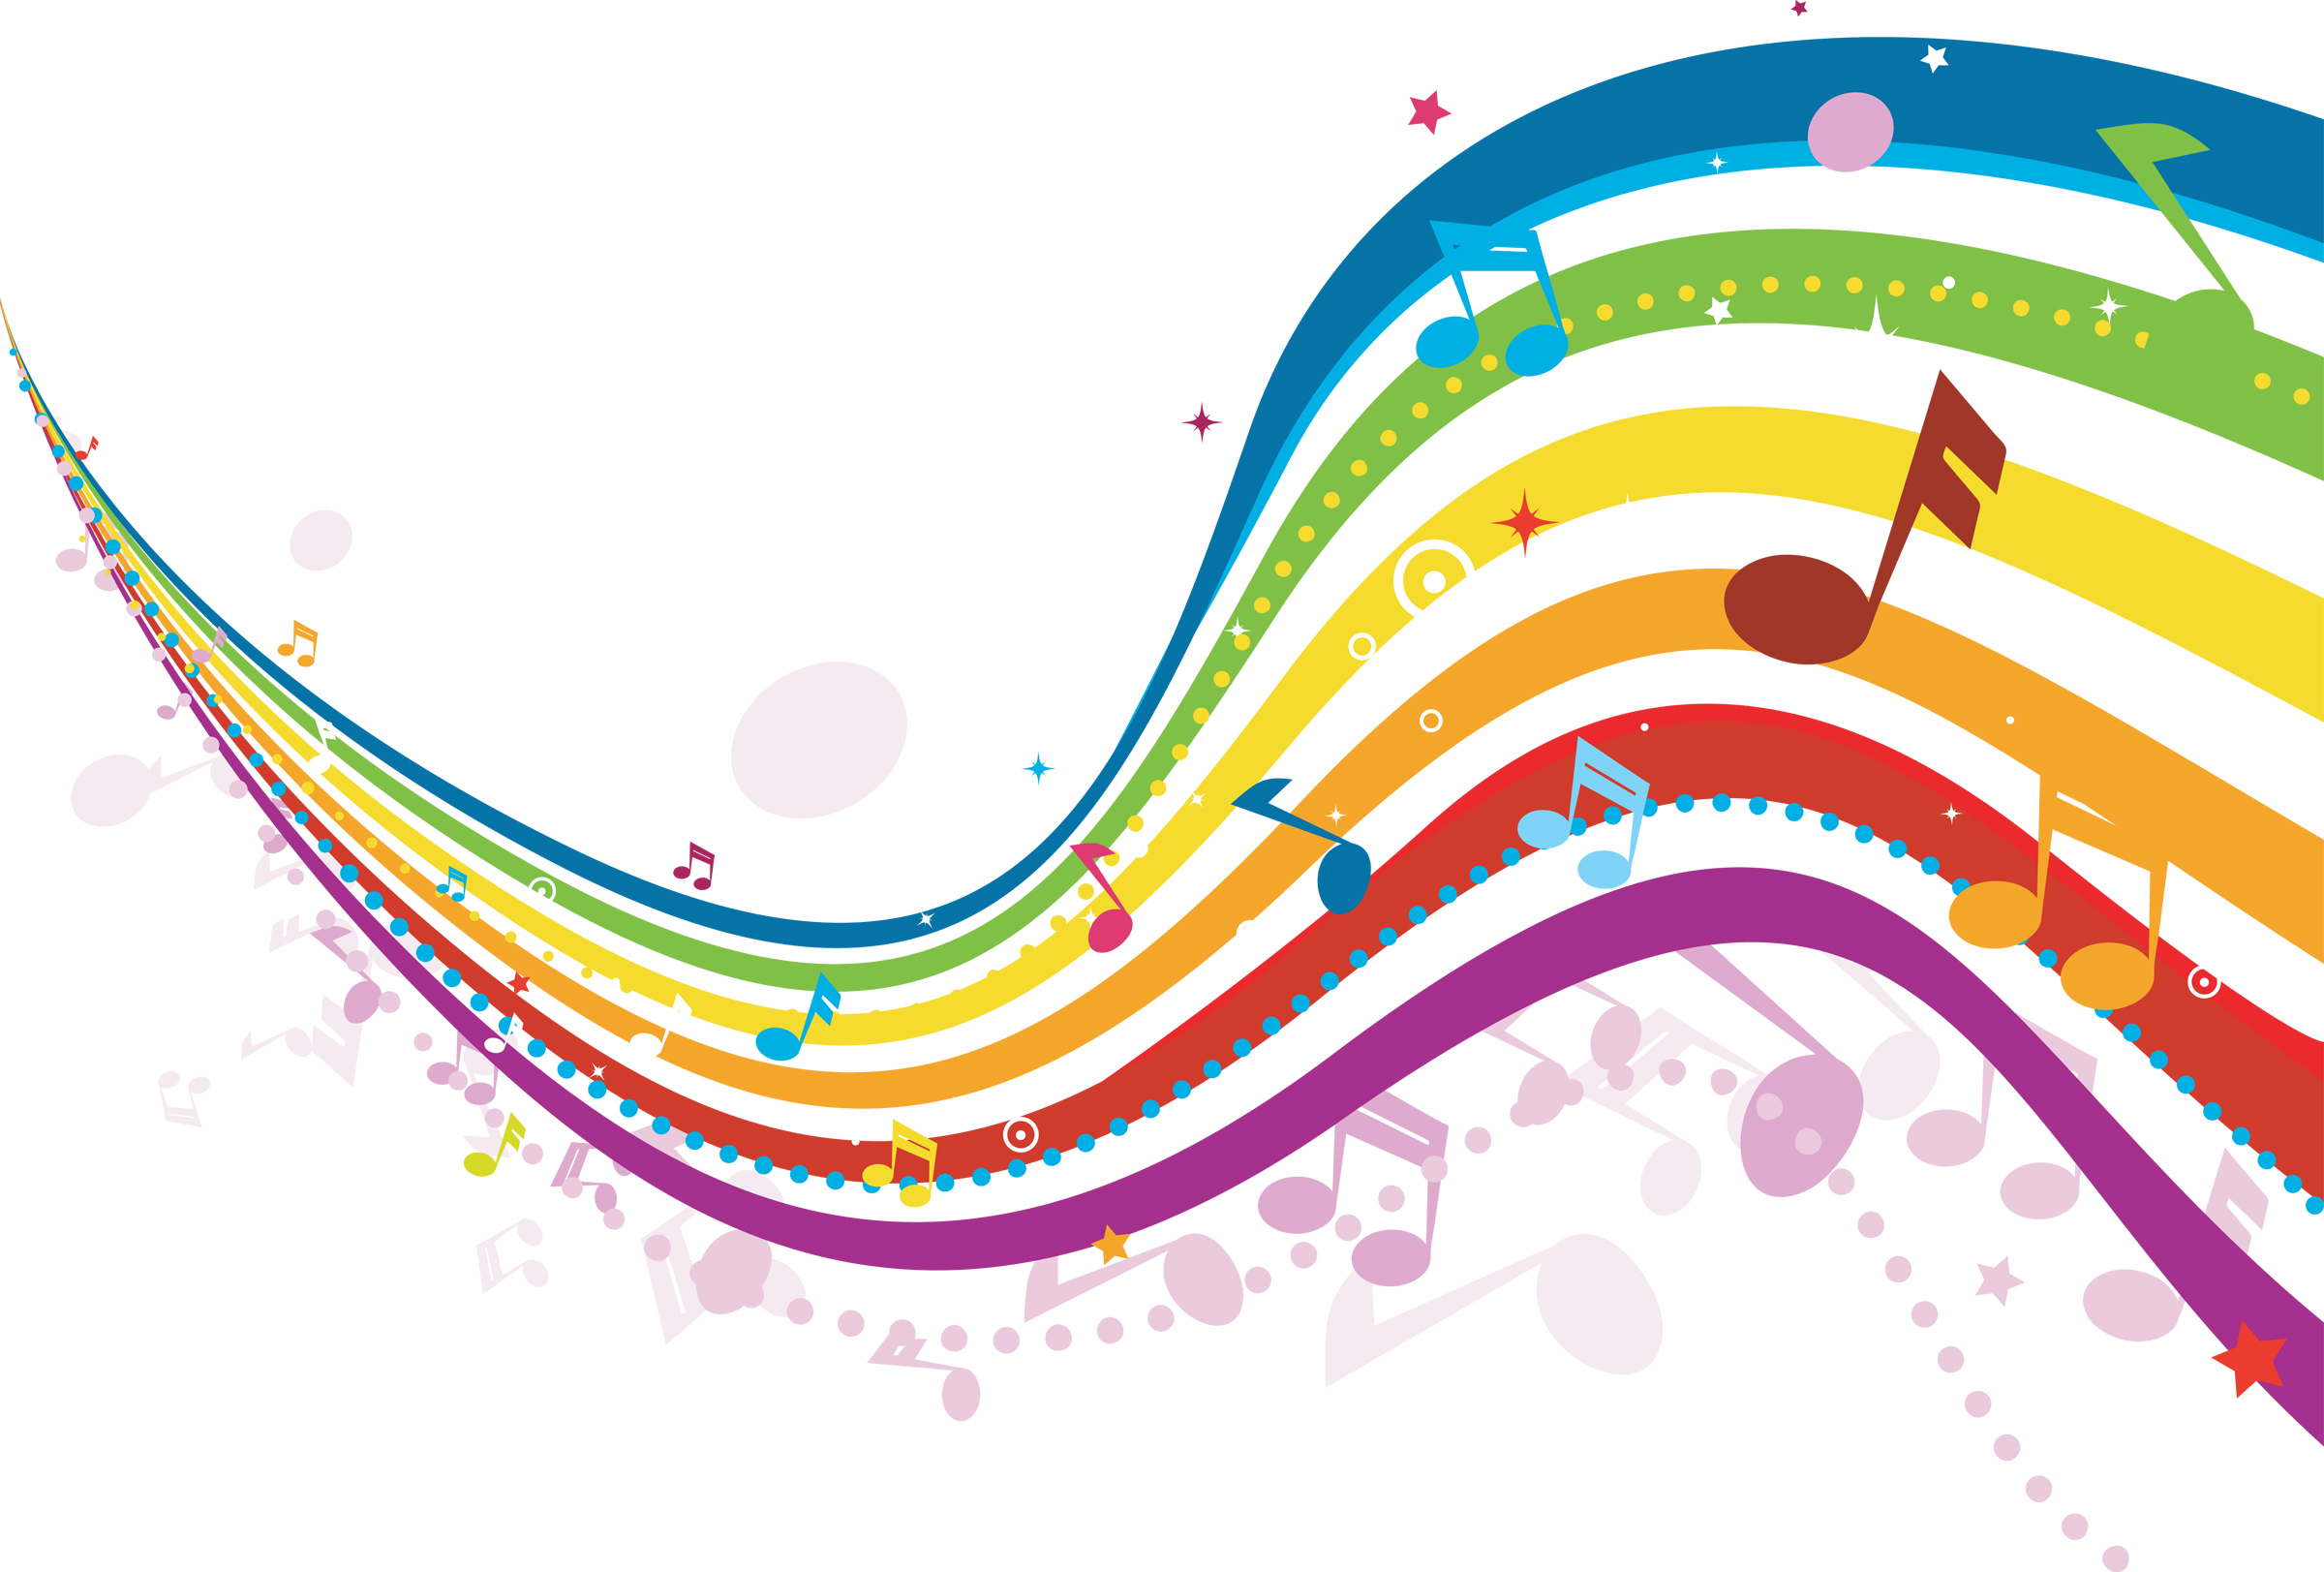 Rainbow Music Notes Background Hd Wallpaper Background Images: Savvy Entertaining